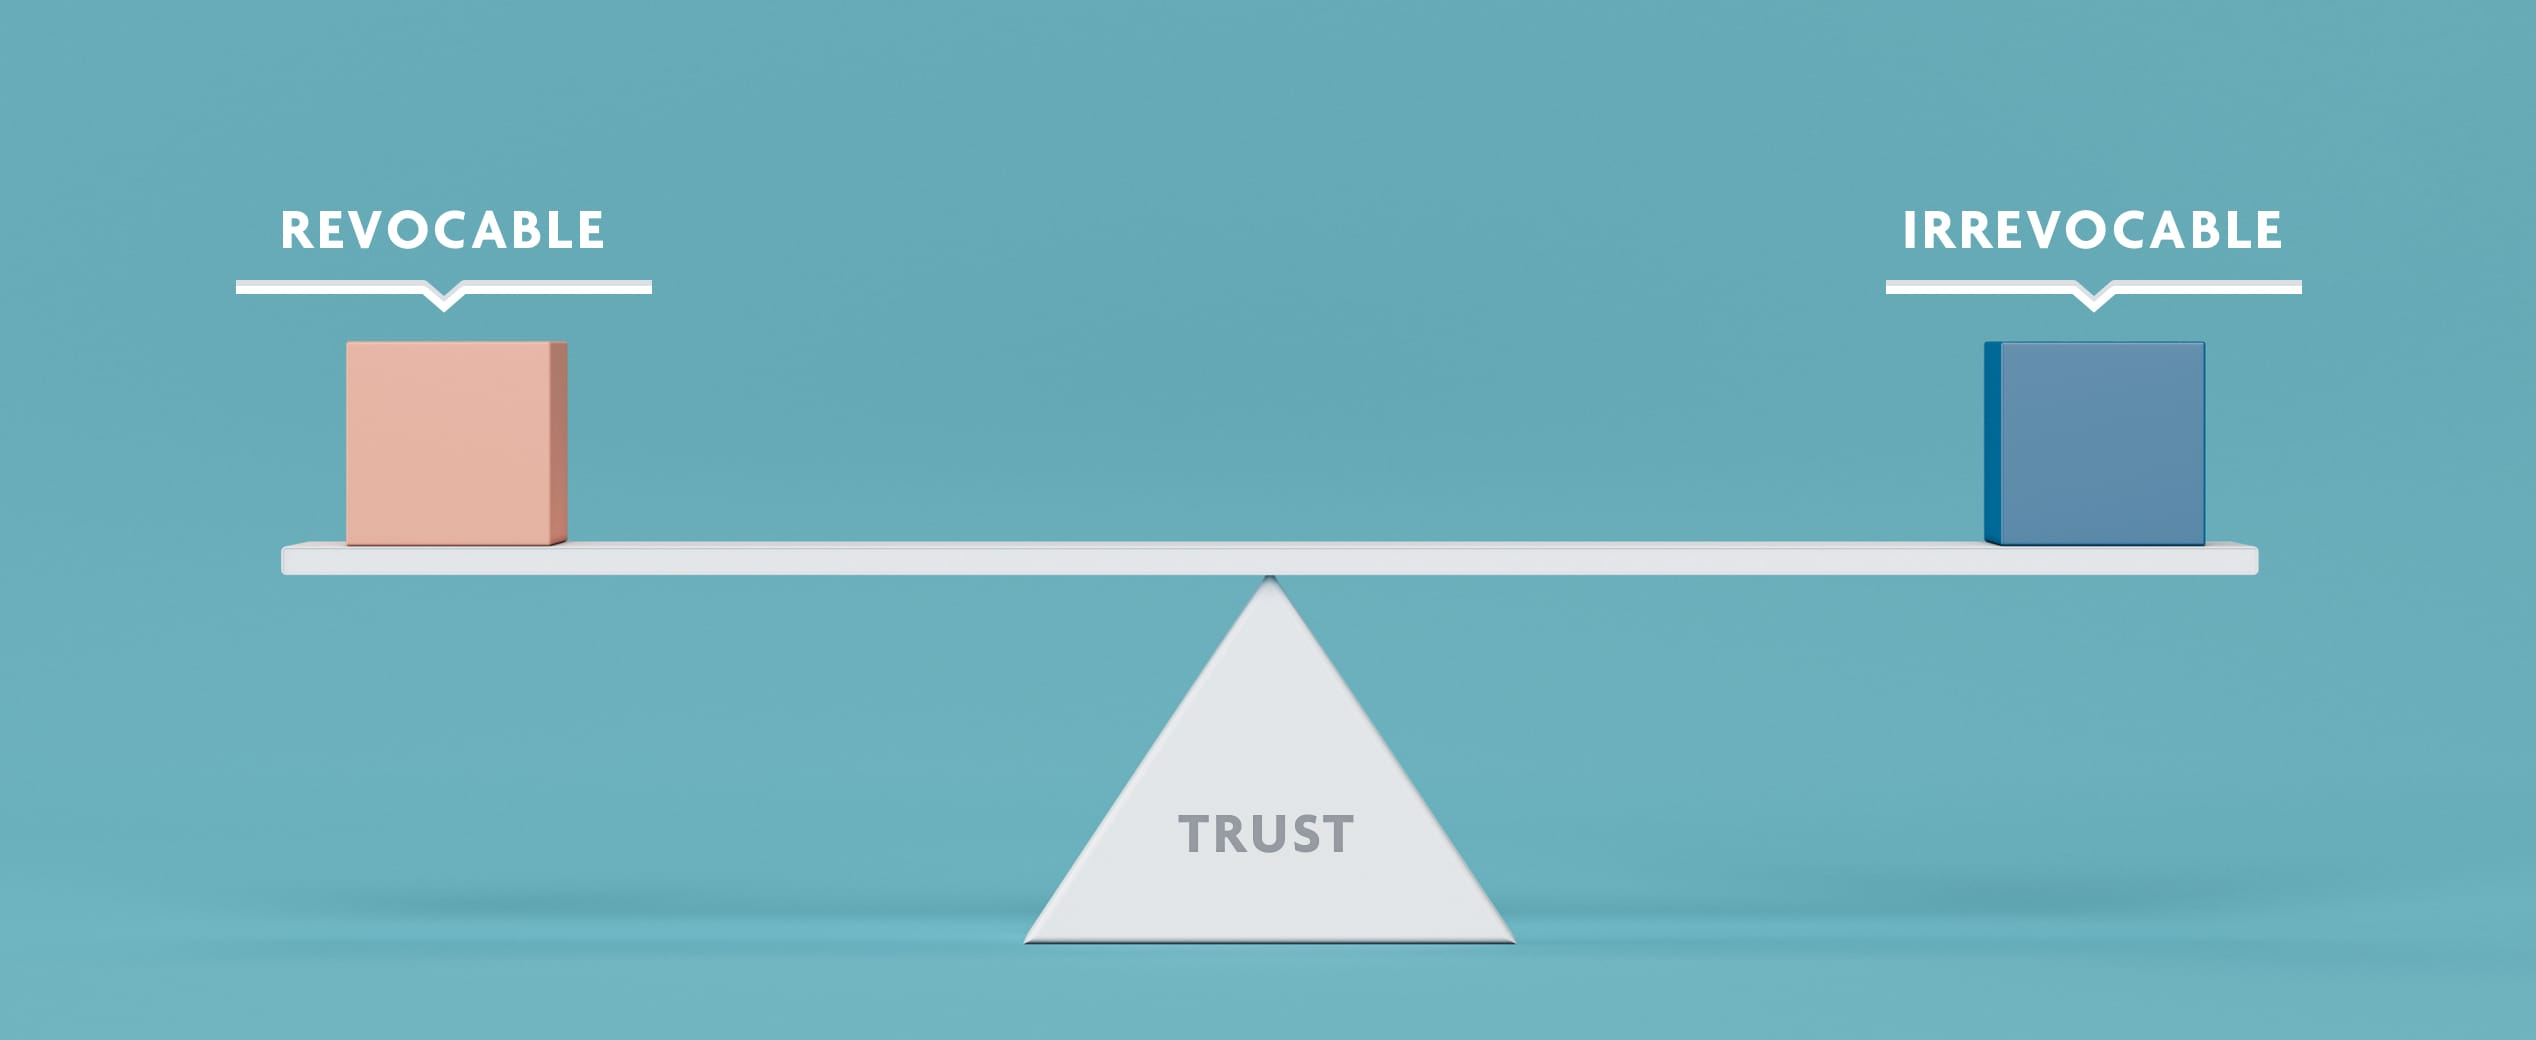 Seesaw balance between different types of trusts.